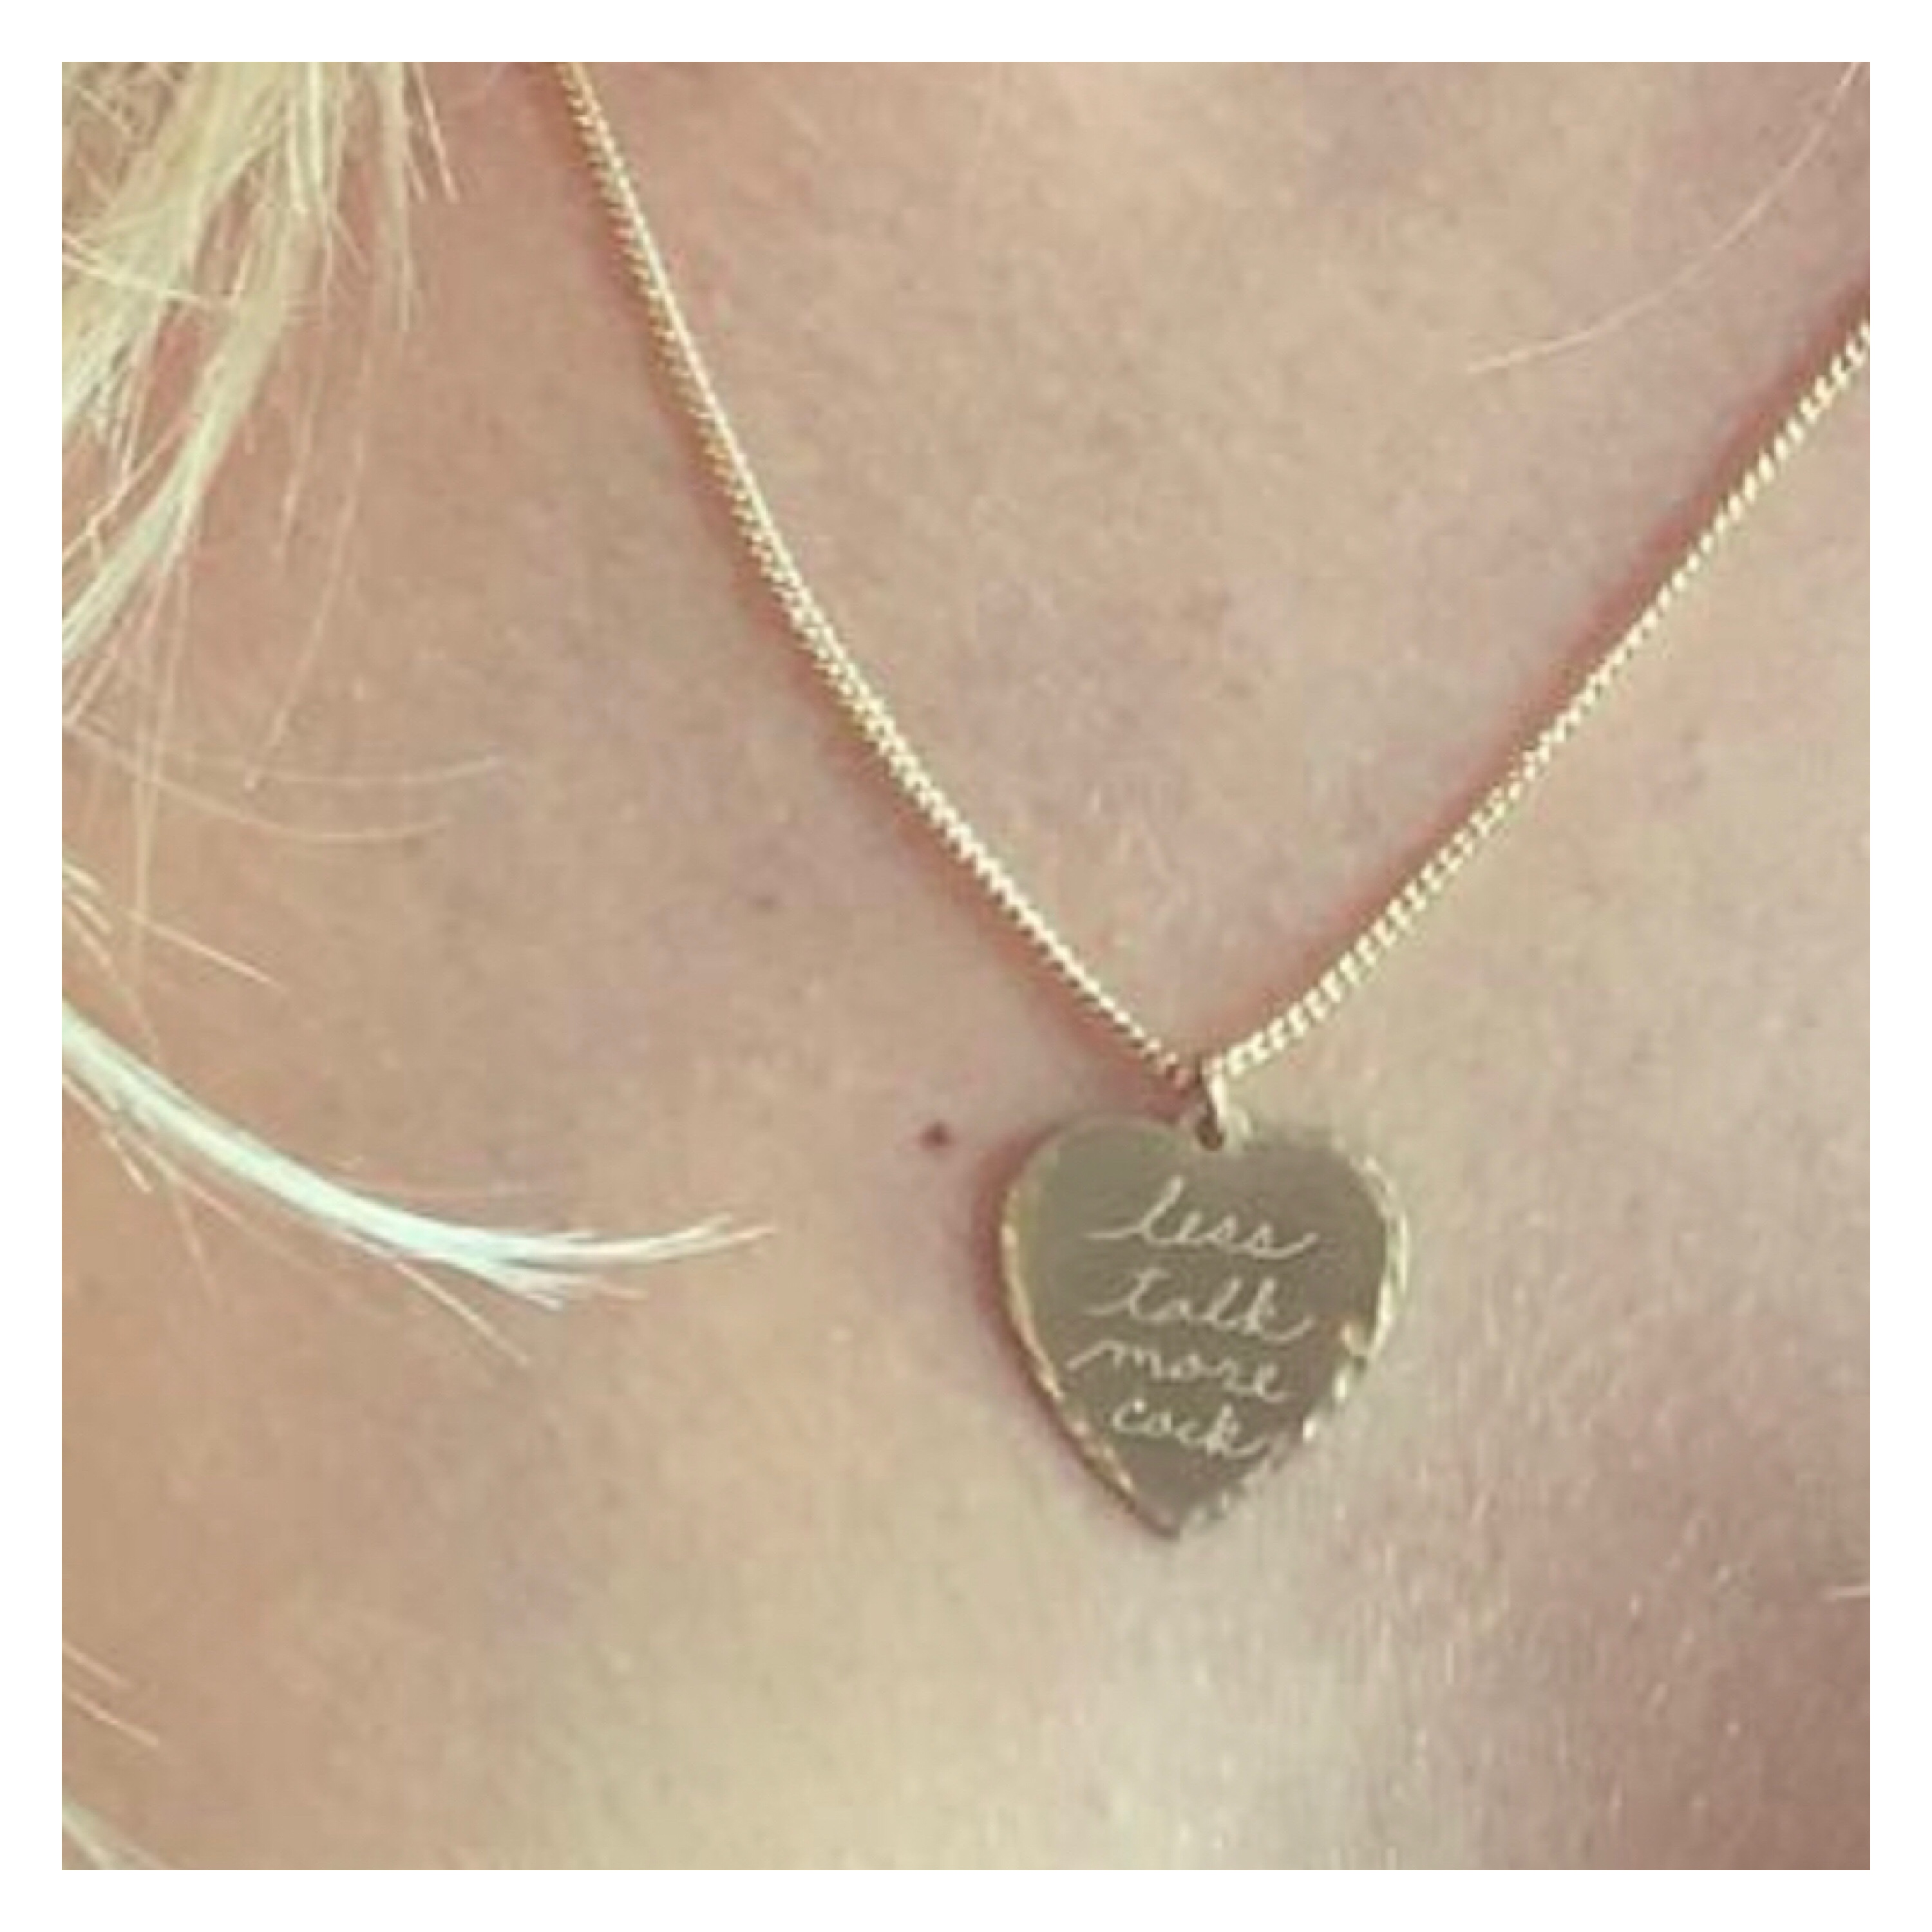 Good love heart pendant with the inscription, less talk more cock